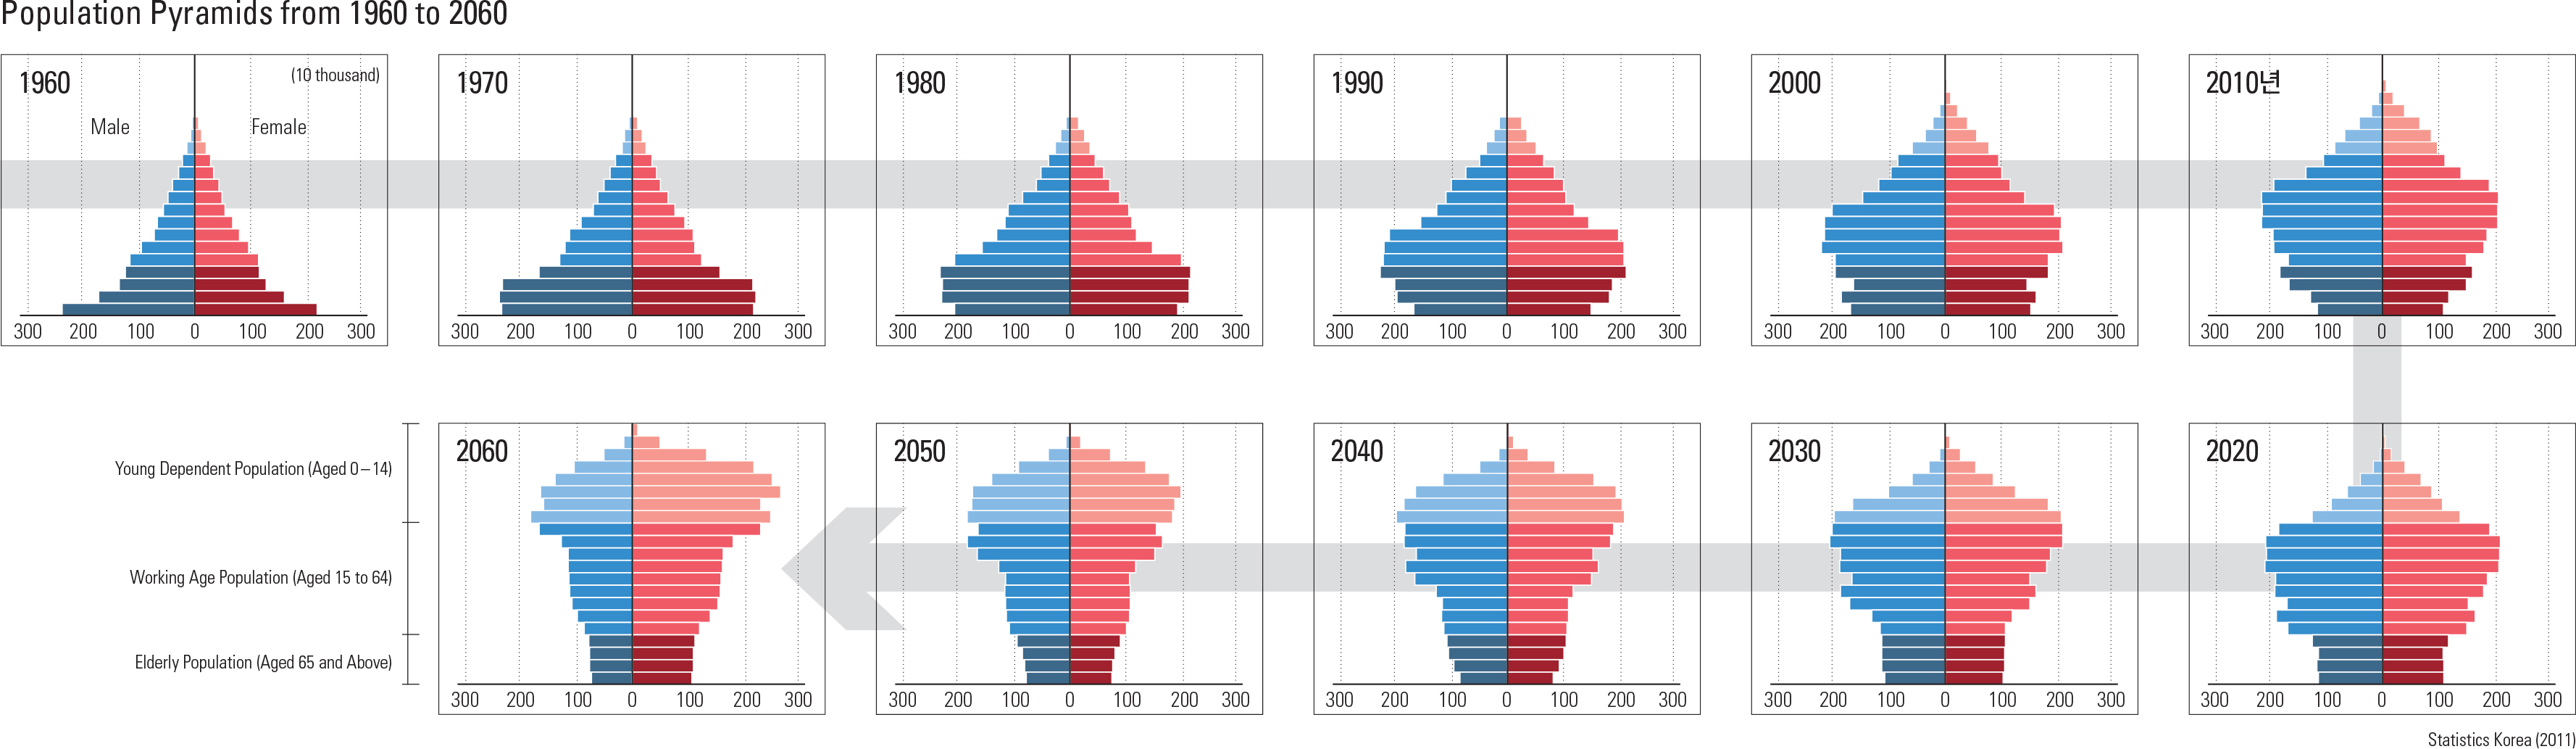 Population Pyramids from 1960 to 2060